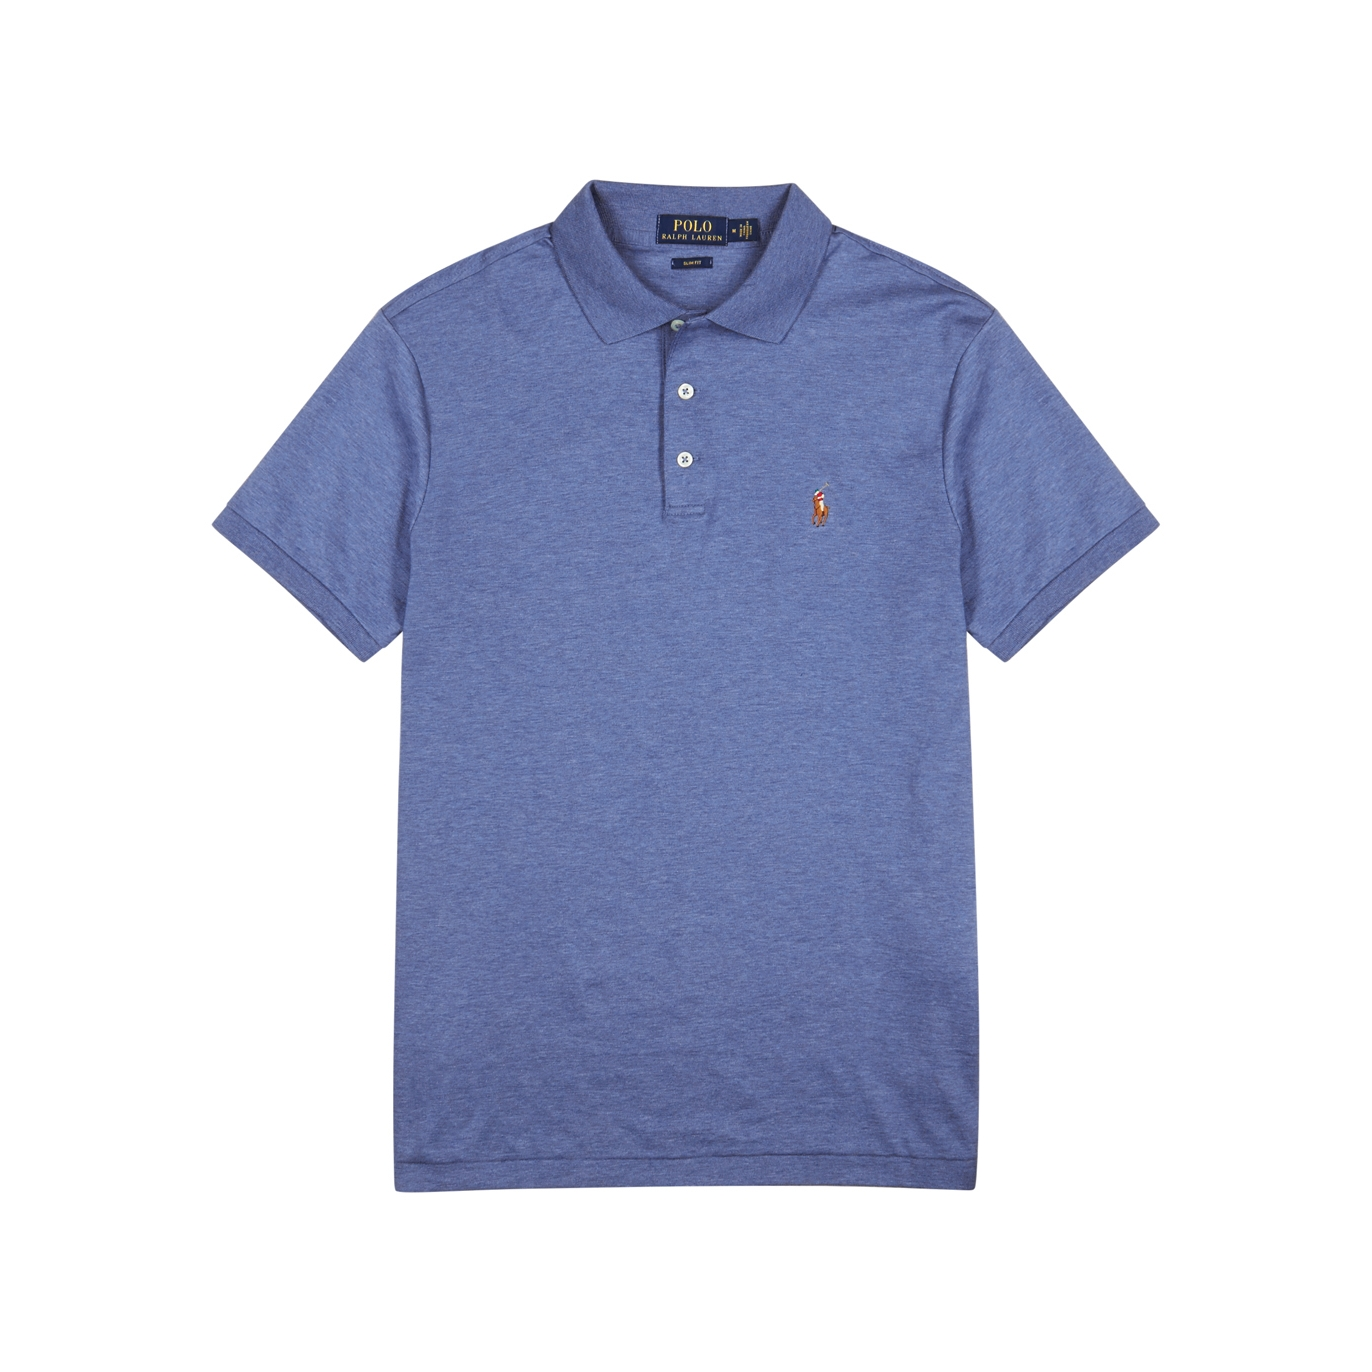 b3e391e6ffed5 Polo Ralph Lauren Blue slim Pima cotton polo shirt - Harvey Nichols